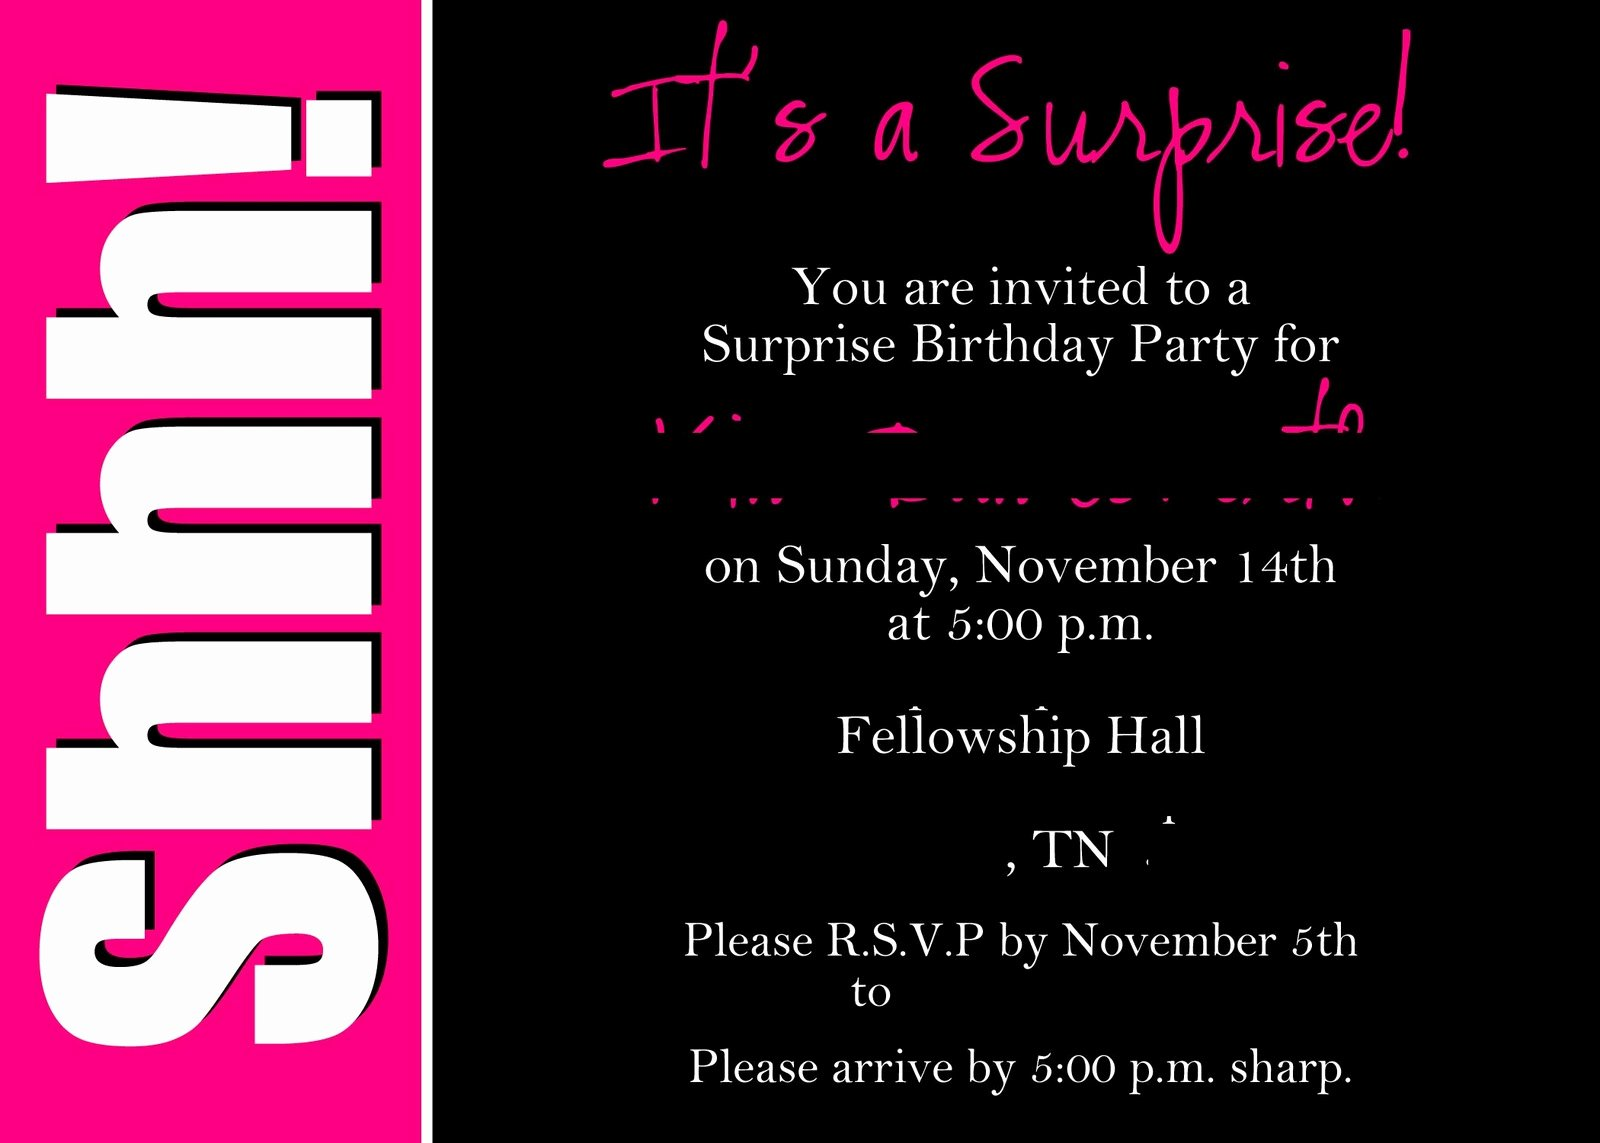 Surprise Party Invitation Wording Template